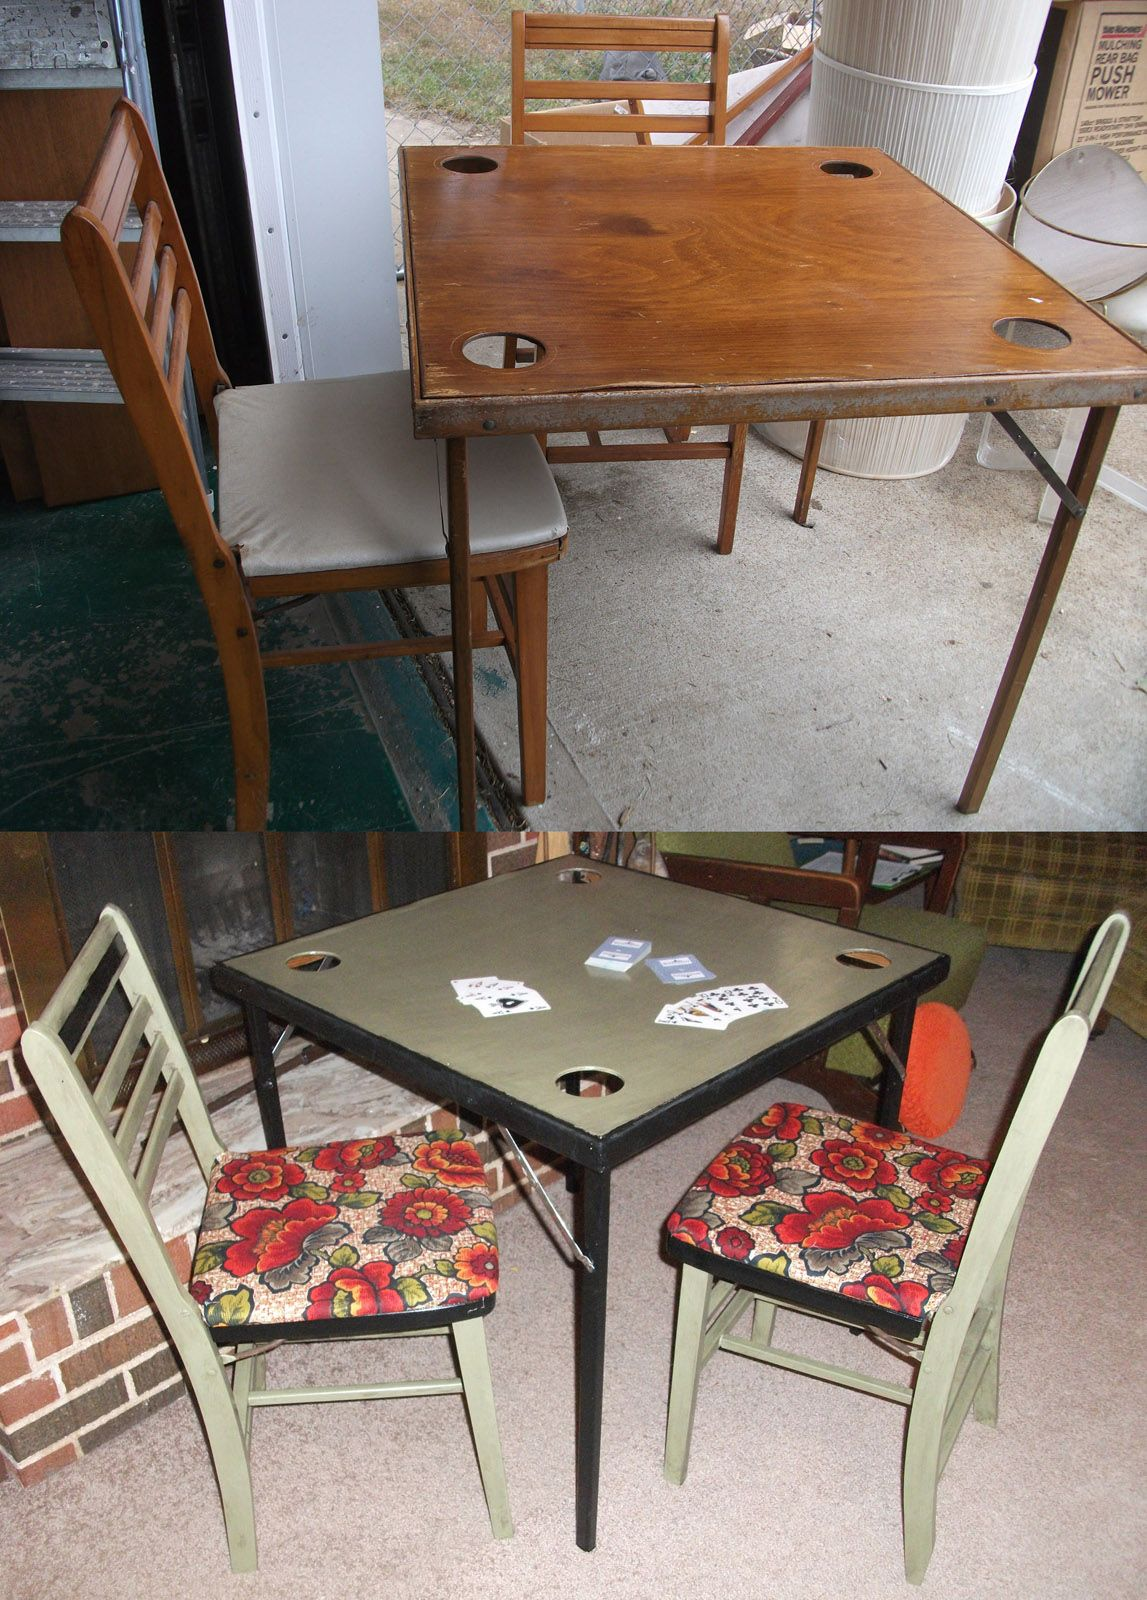 Before And After Game Night Vintage Wooden Card Table With Built In Drink Holders And Folding Wooden Chairs Upda Wooden Step Stool Wooden Chair Wooden Cards